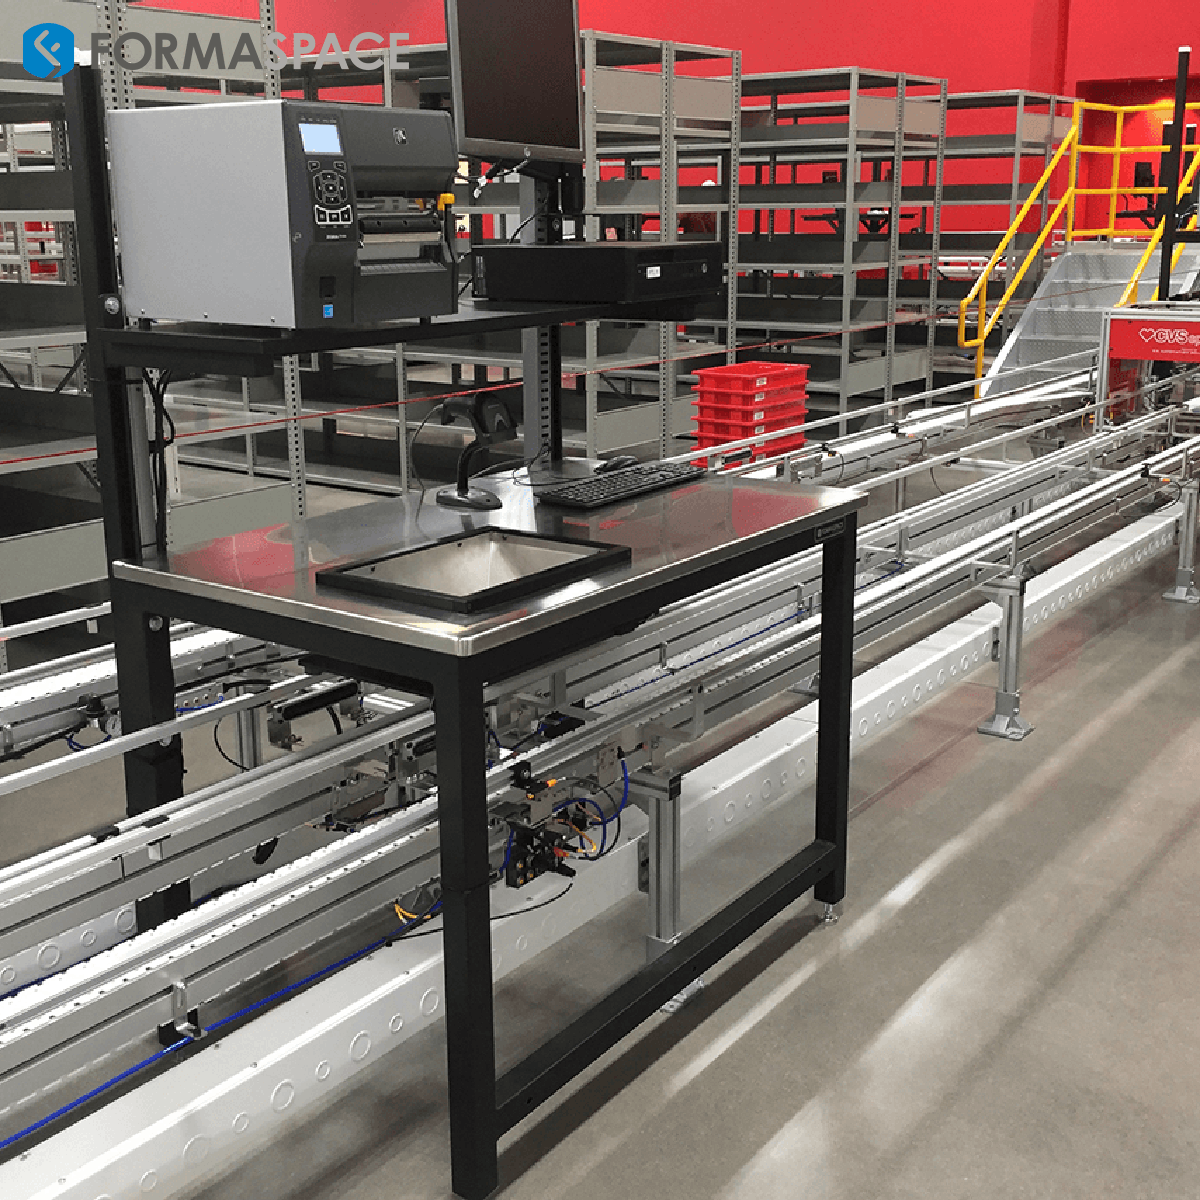 stainless steel countertop industrial workbench with cut out